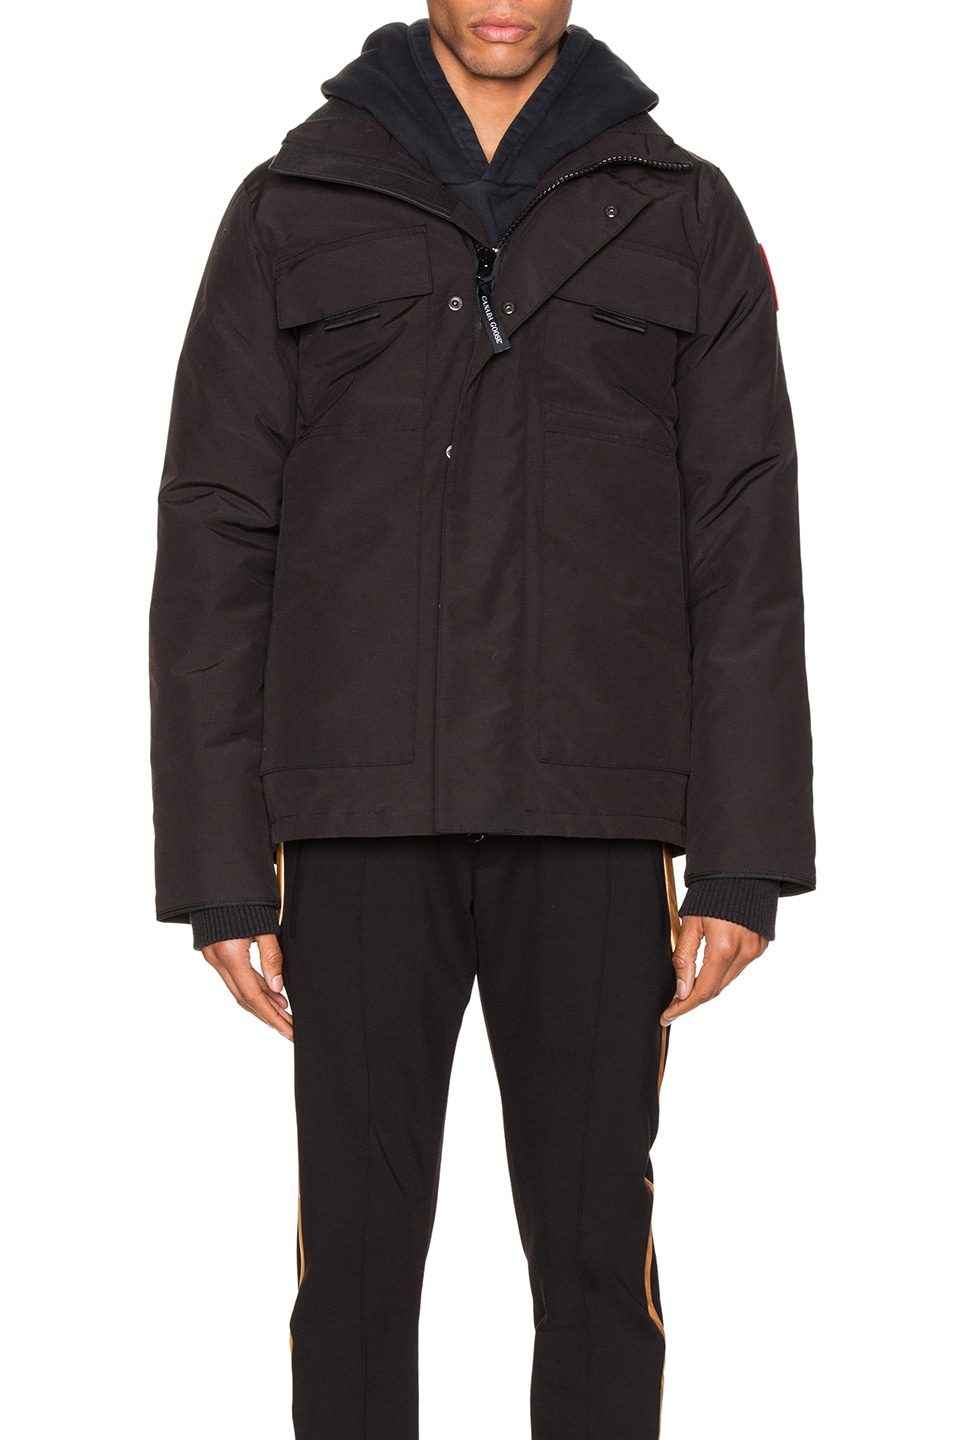 Image 2 of Canada Goose Forester Jacket in Black